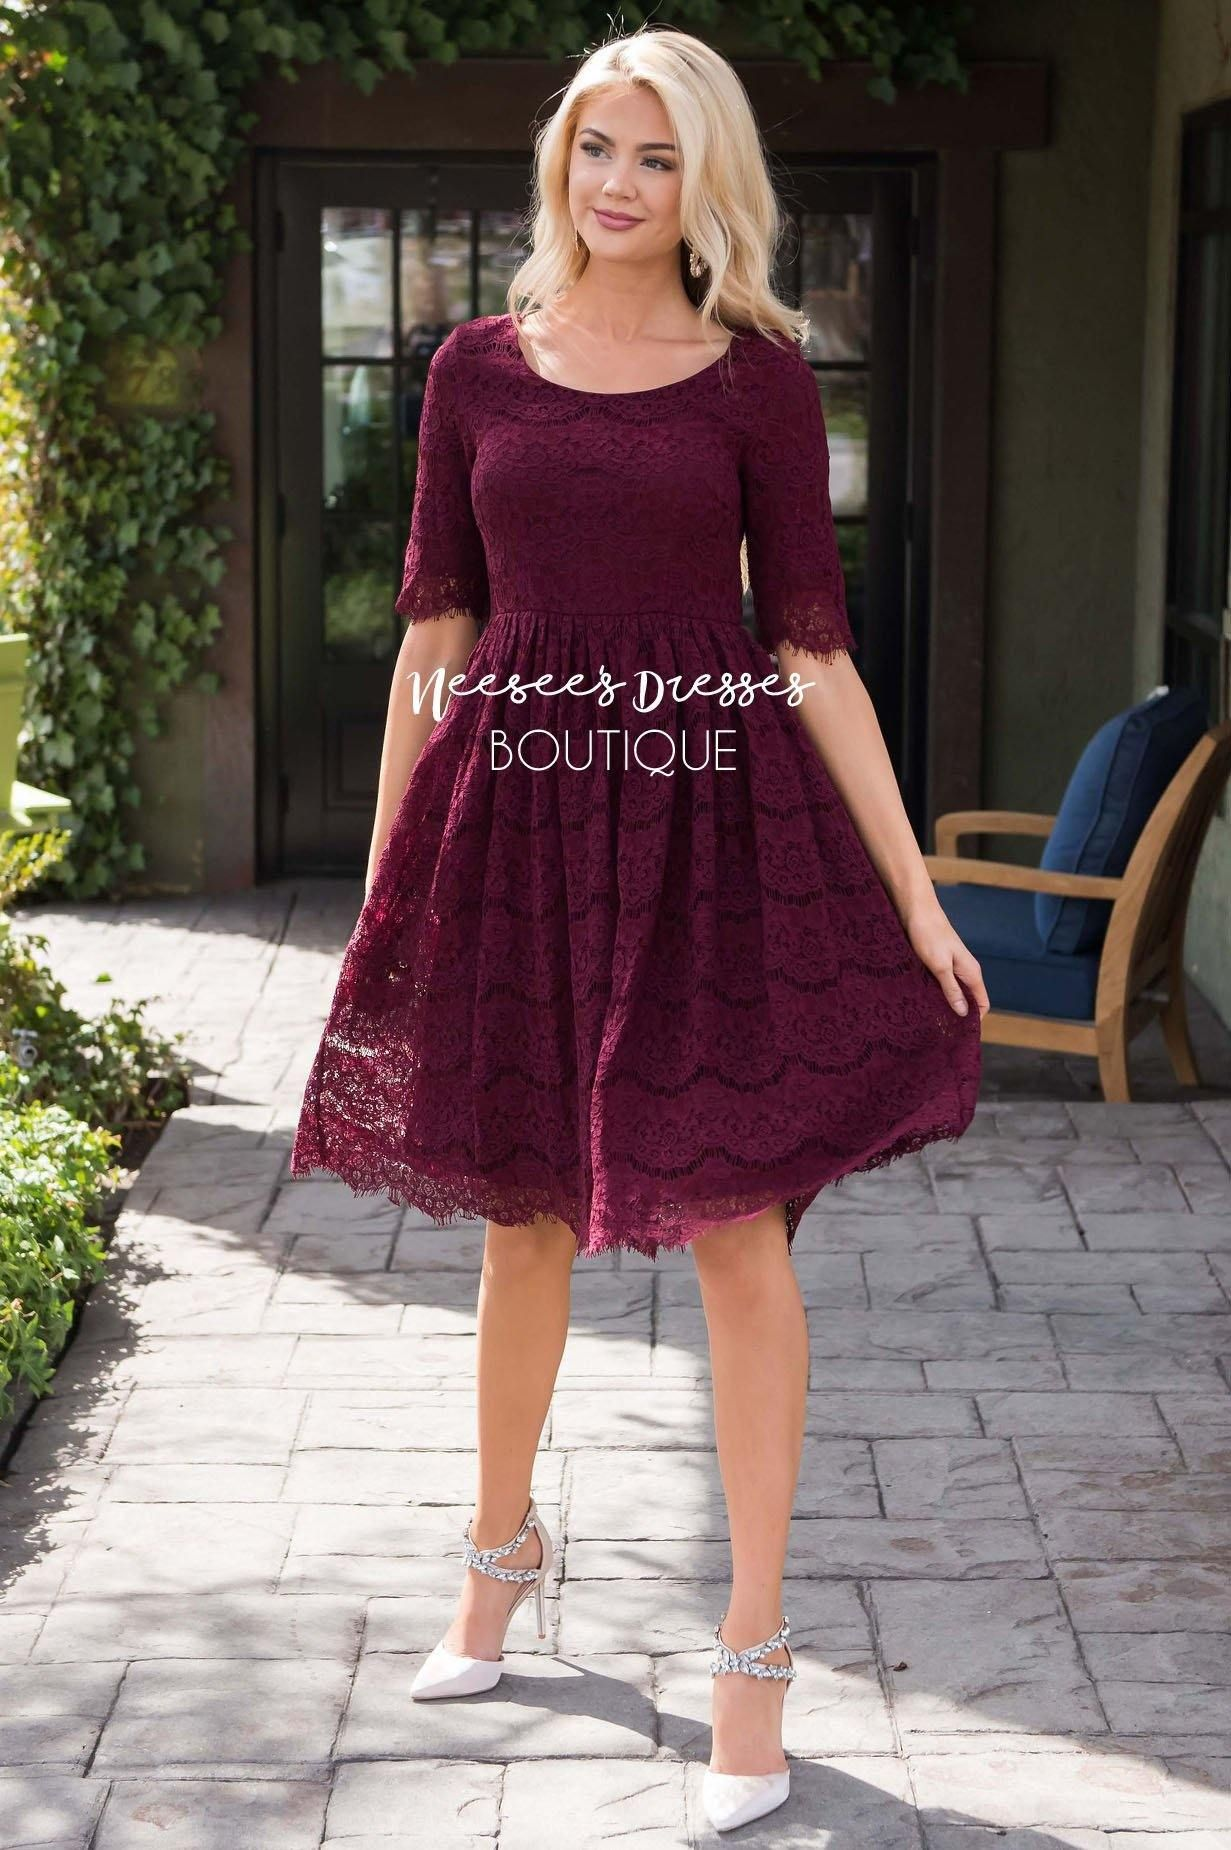 Burgundy Lace Modest Church Dress Best And Affordable Modest Boutique Cute Modest Dresses And Skirts For Modest Dresses Winter Dress Outfits Burgundy Dress [ 1850 x 1231 Pixel ]